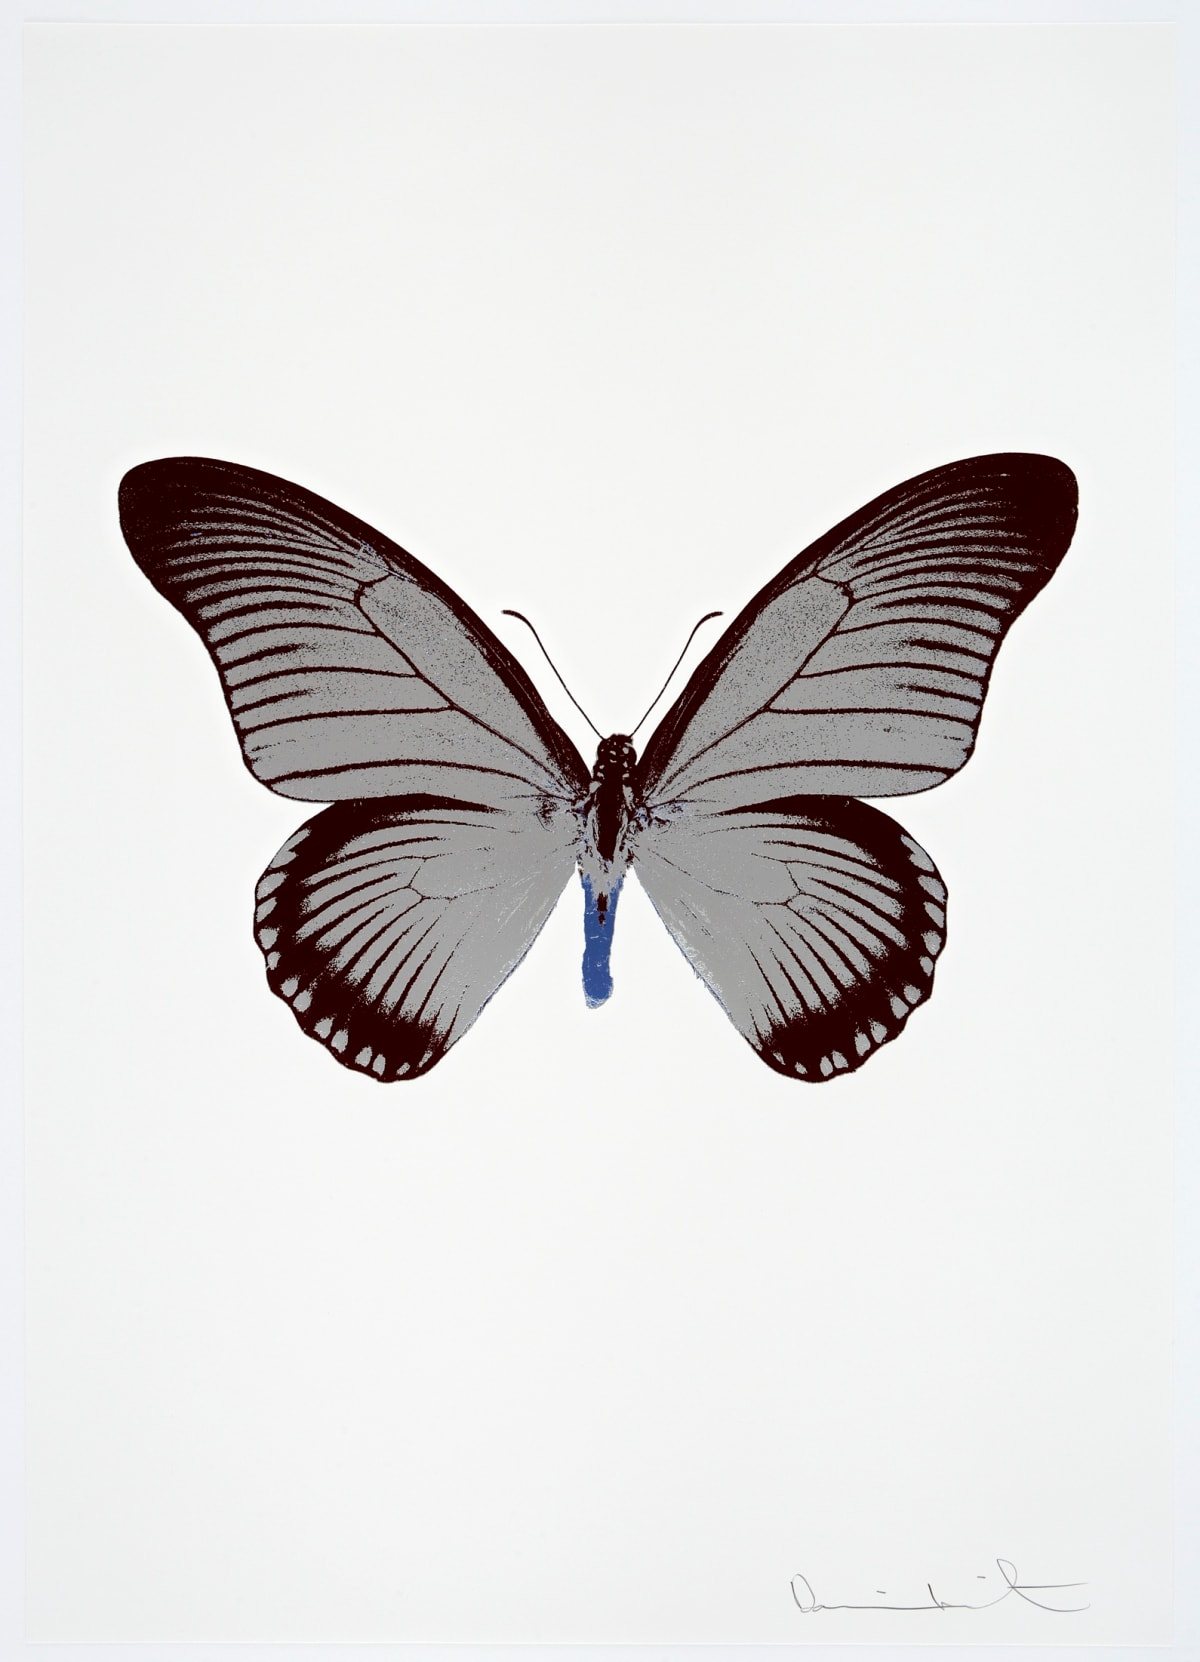 Damien Hirst The Souls IV - Silver Gloss/Burgundy/Frost Blue Damien Hirst butterfly foil print for sale Damien Hirst print for sale , 2010 3 colour foil block on 300gsm Arches 88 archival paper. Signed and numbered. Published by Paul Stolper and Other Criteria 72 x 51cm OC8020 / 1418-43 Edition of 15